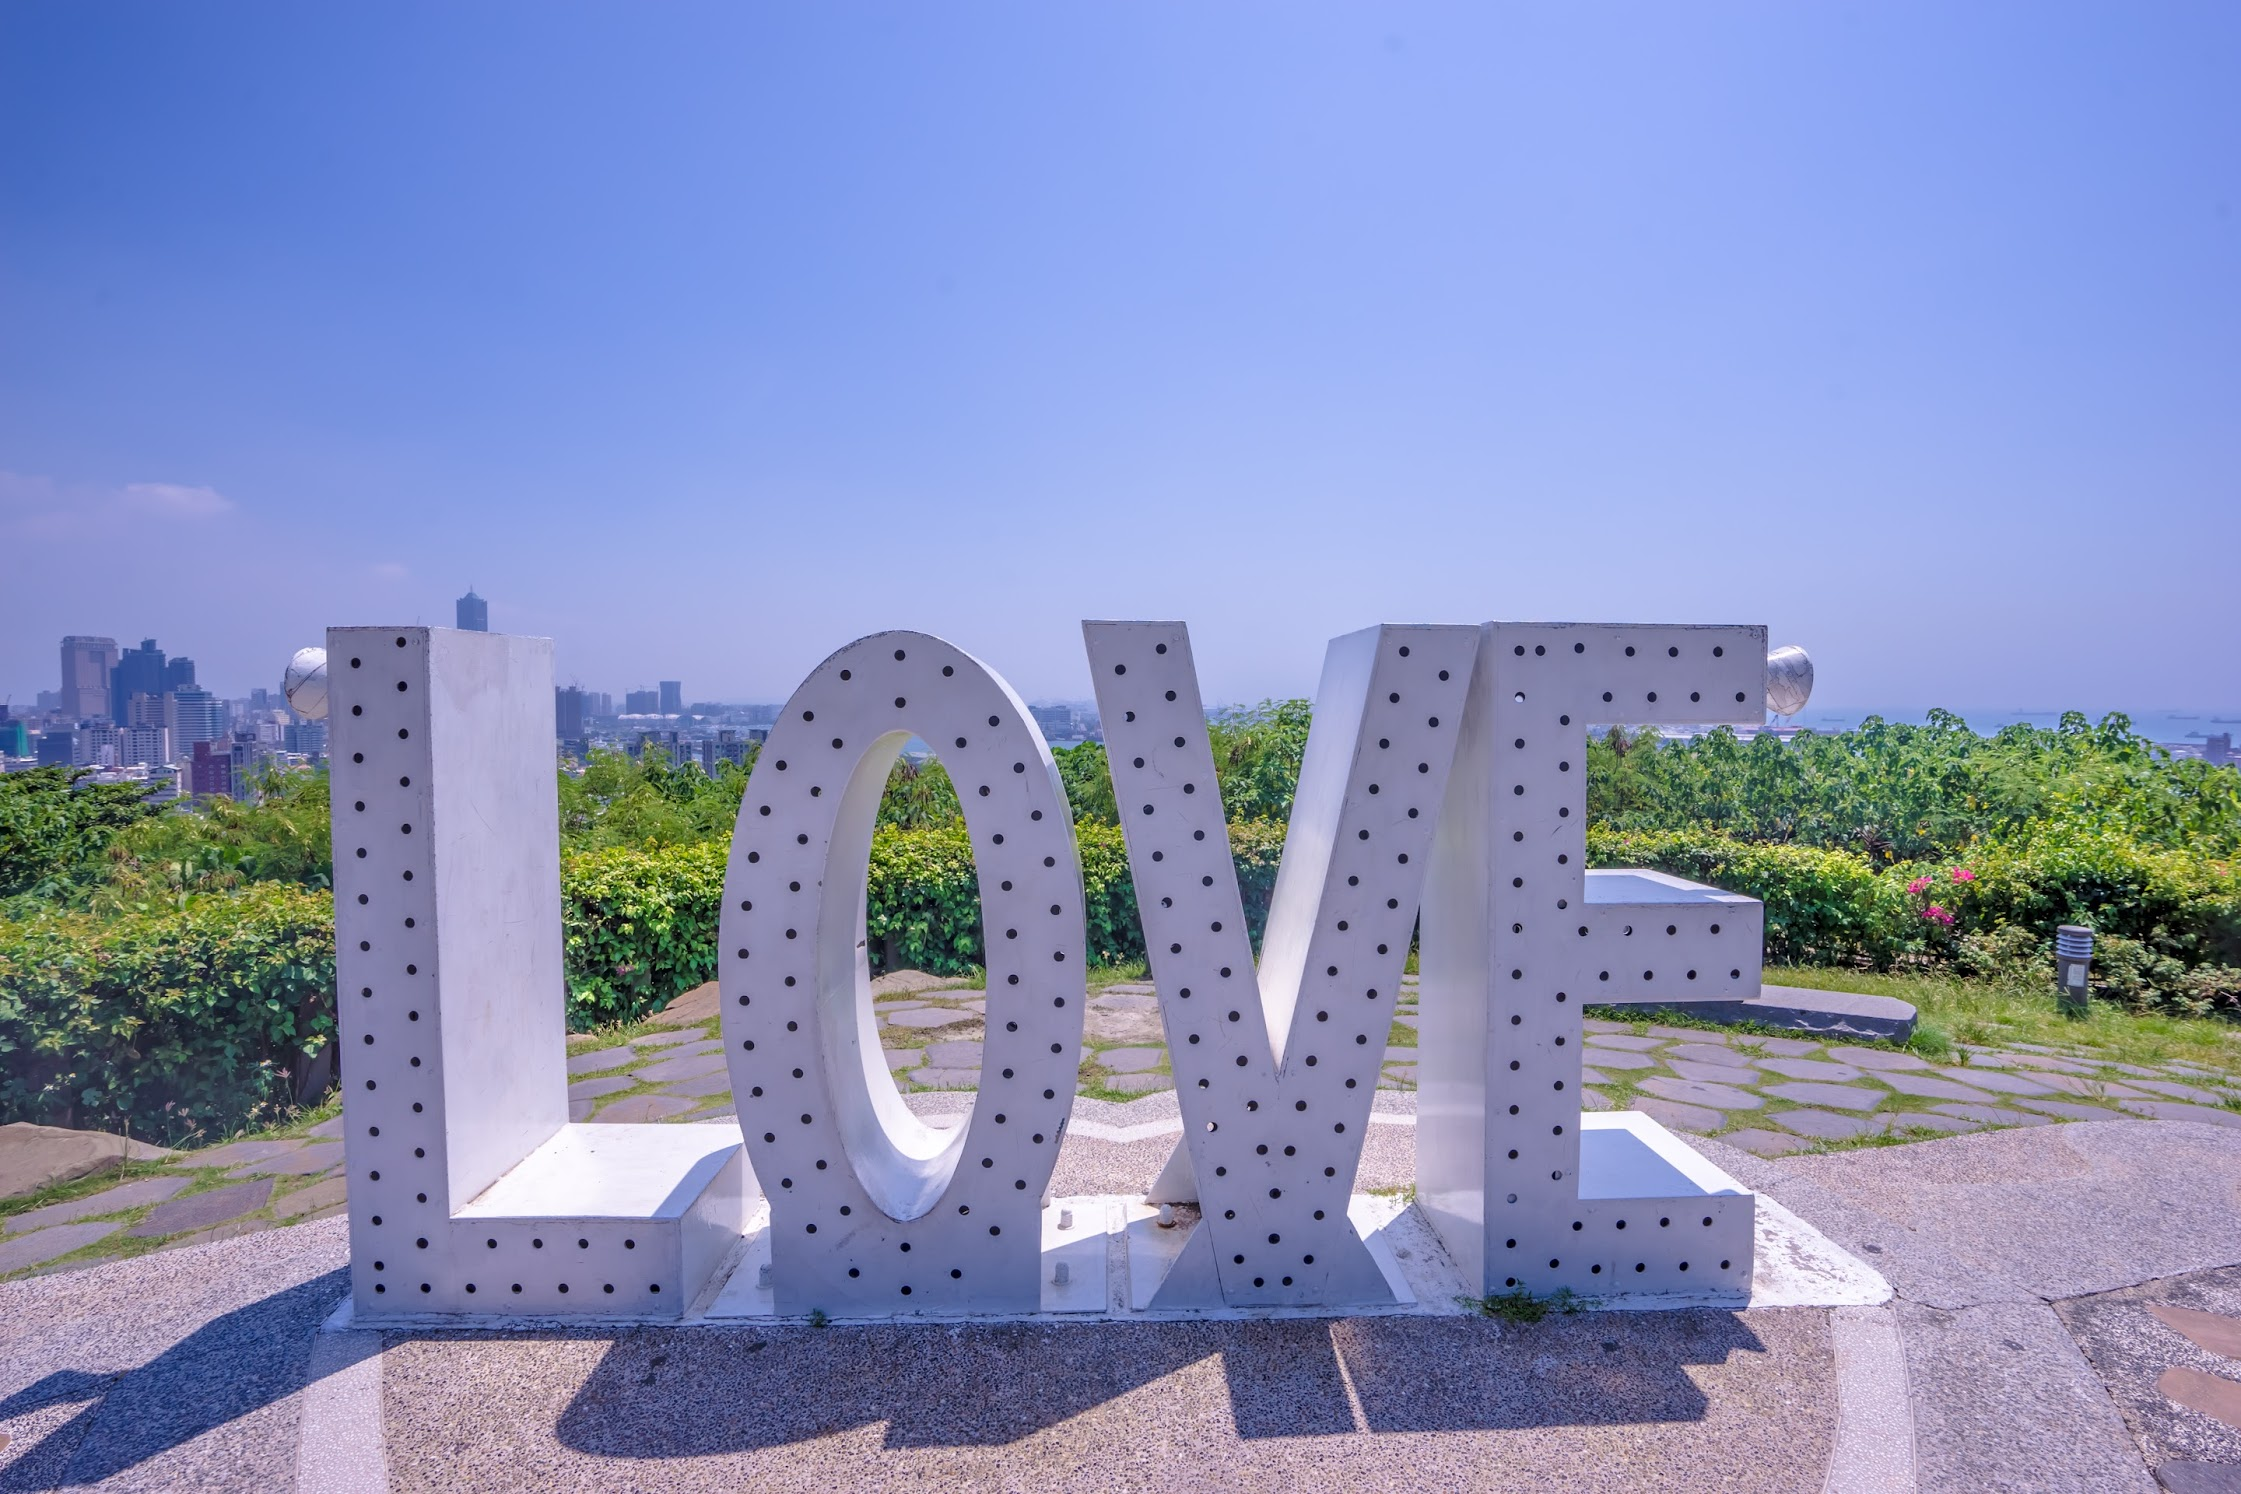 Kaohsiung Shoushan LOVE Valentine's Lookout2